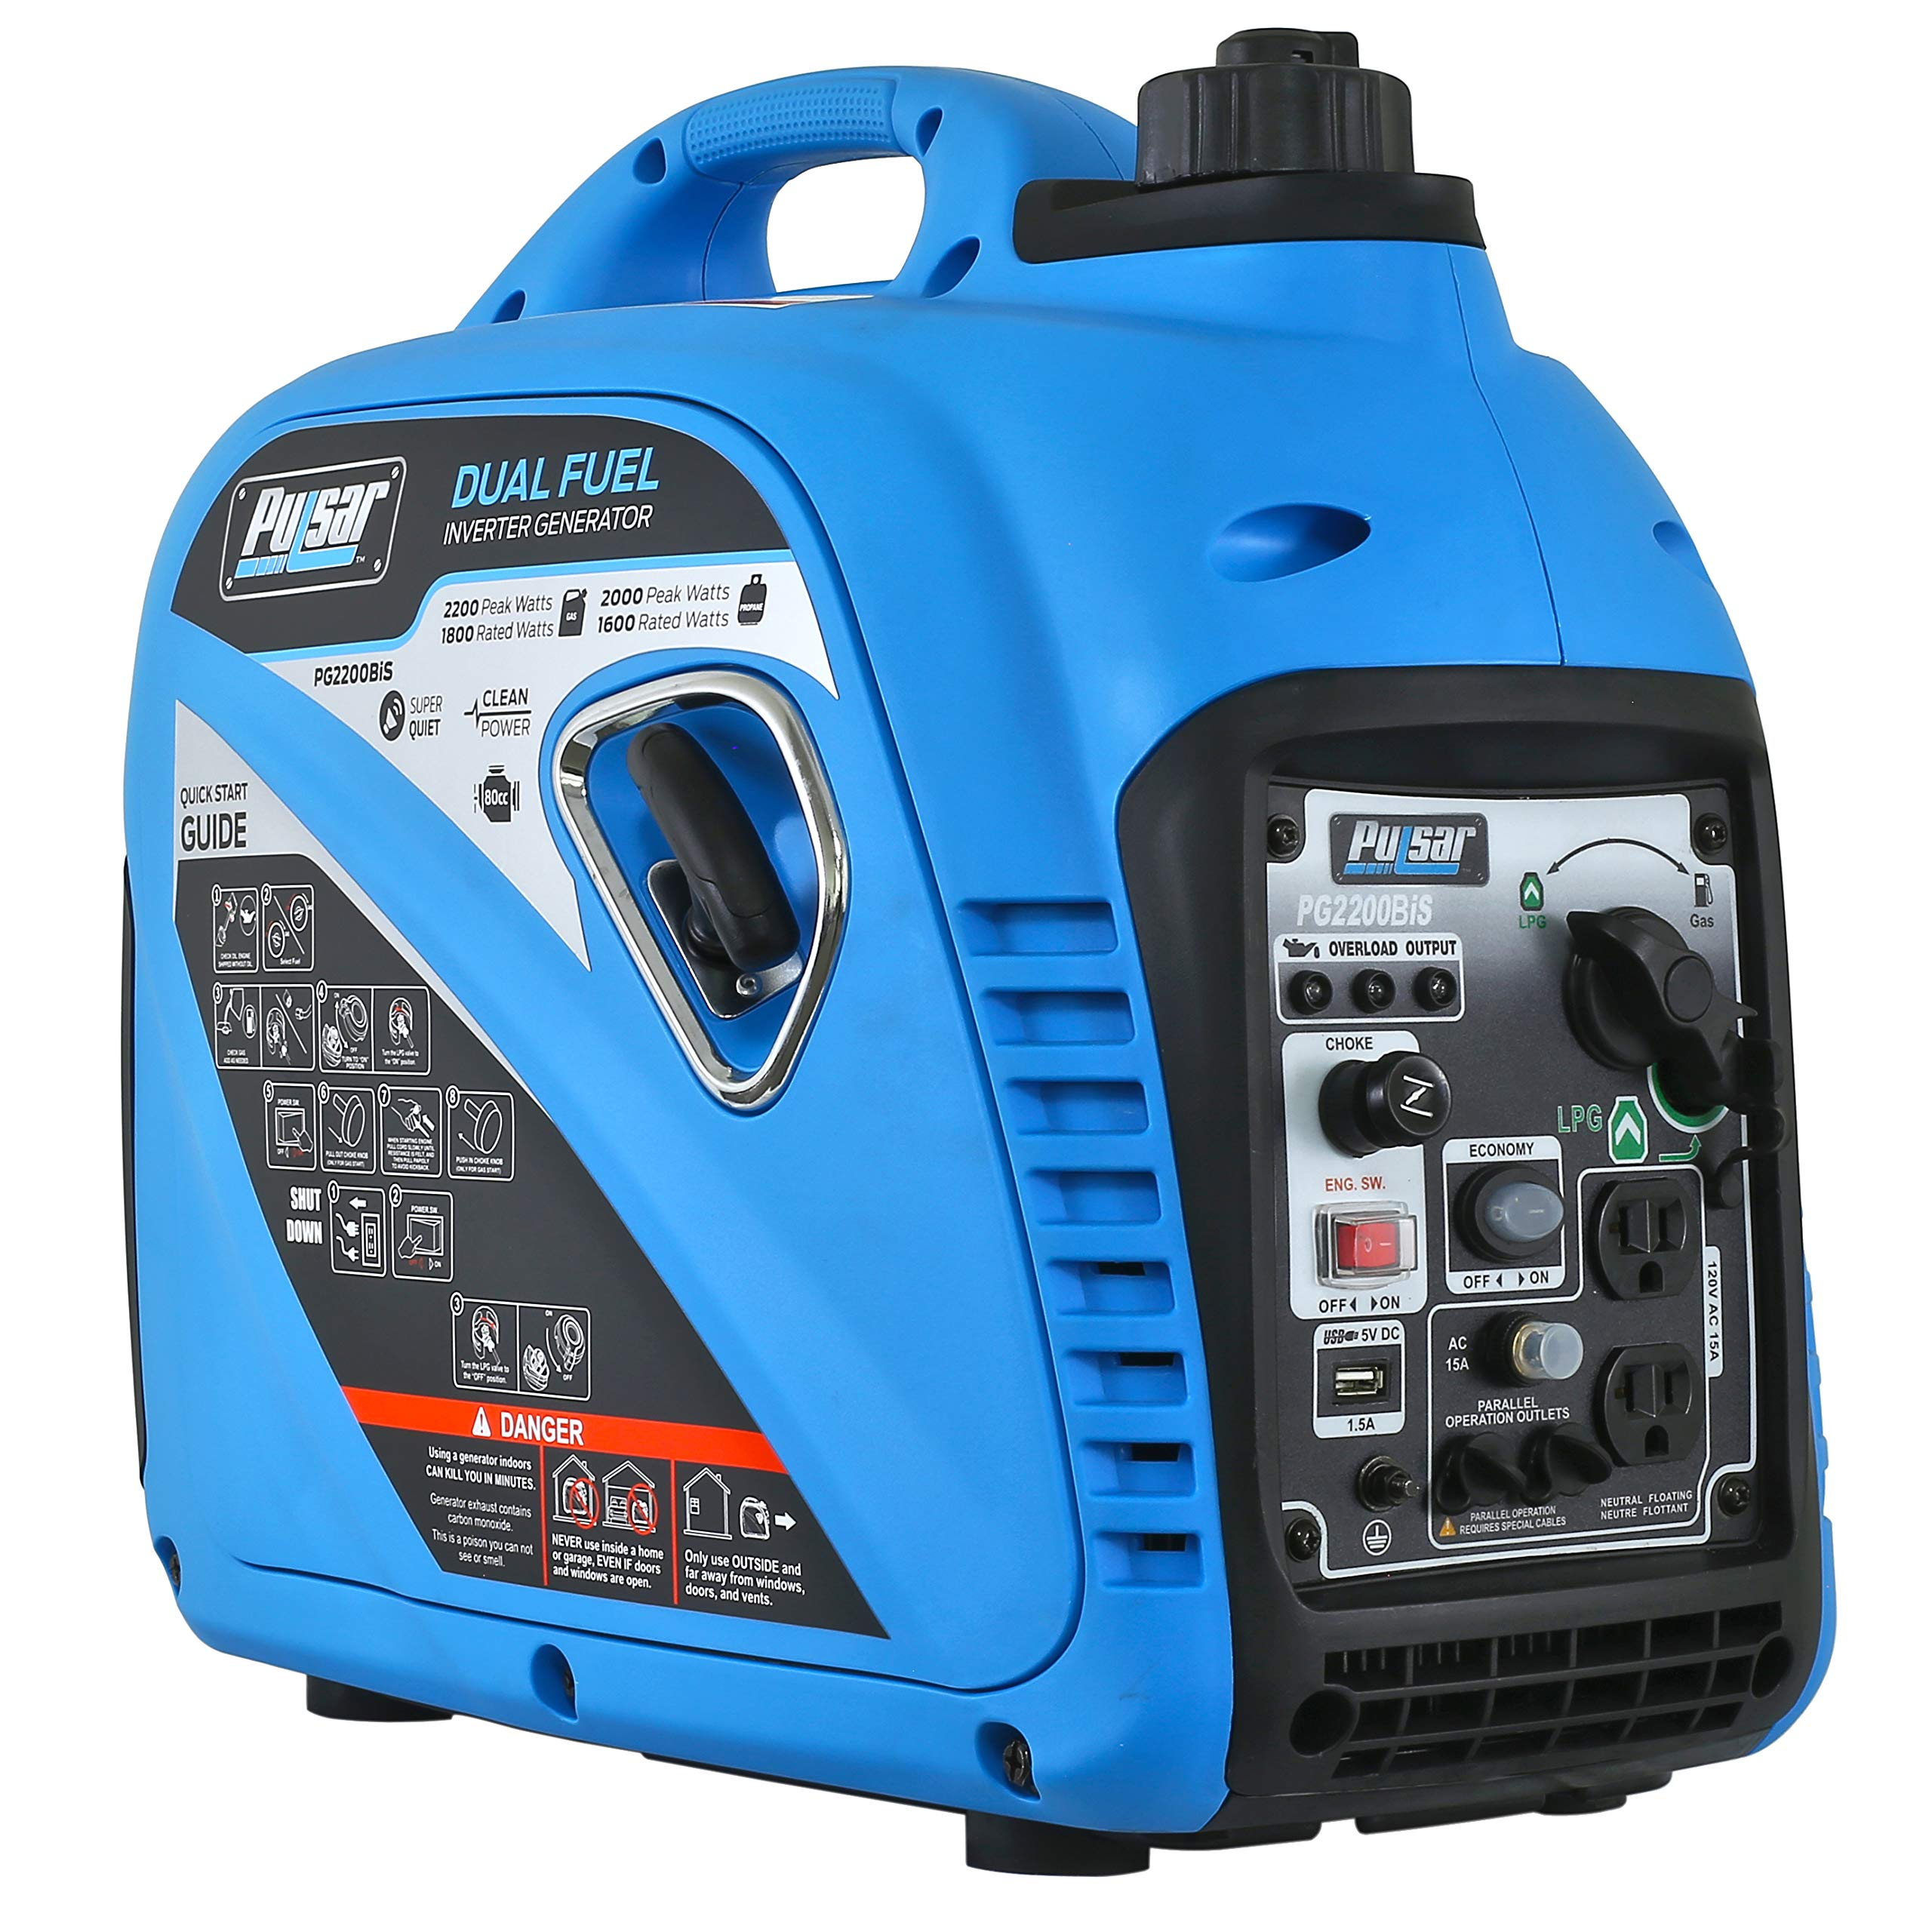 Pulsar 2,200W Portable Dual Fuel Quiet Inverter Generator